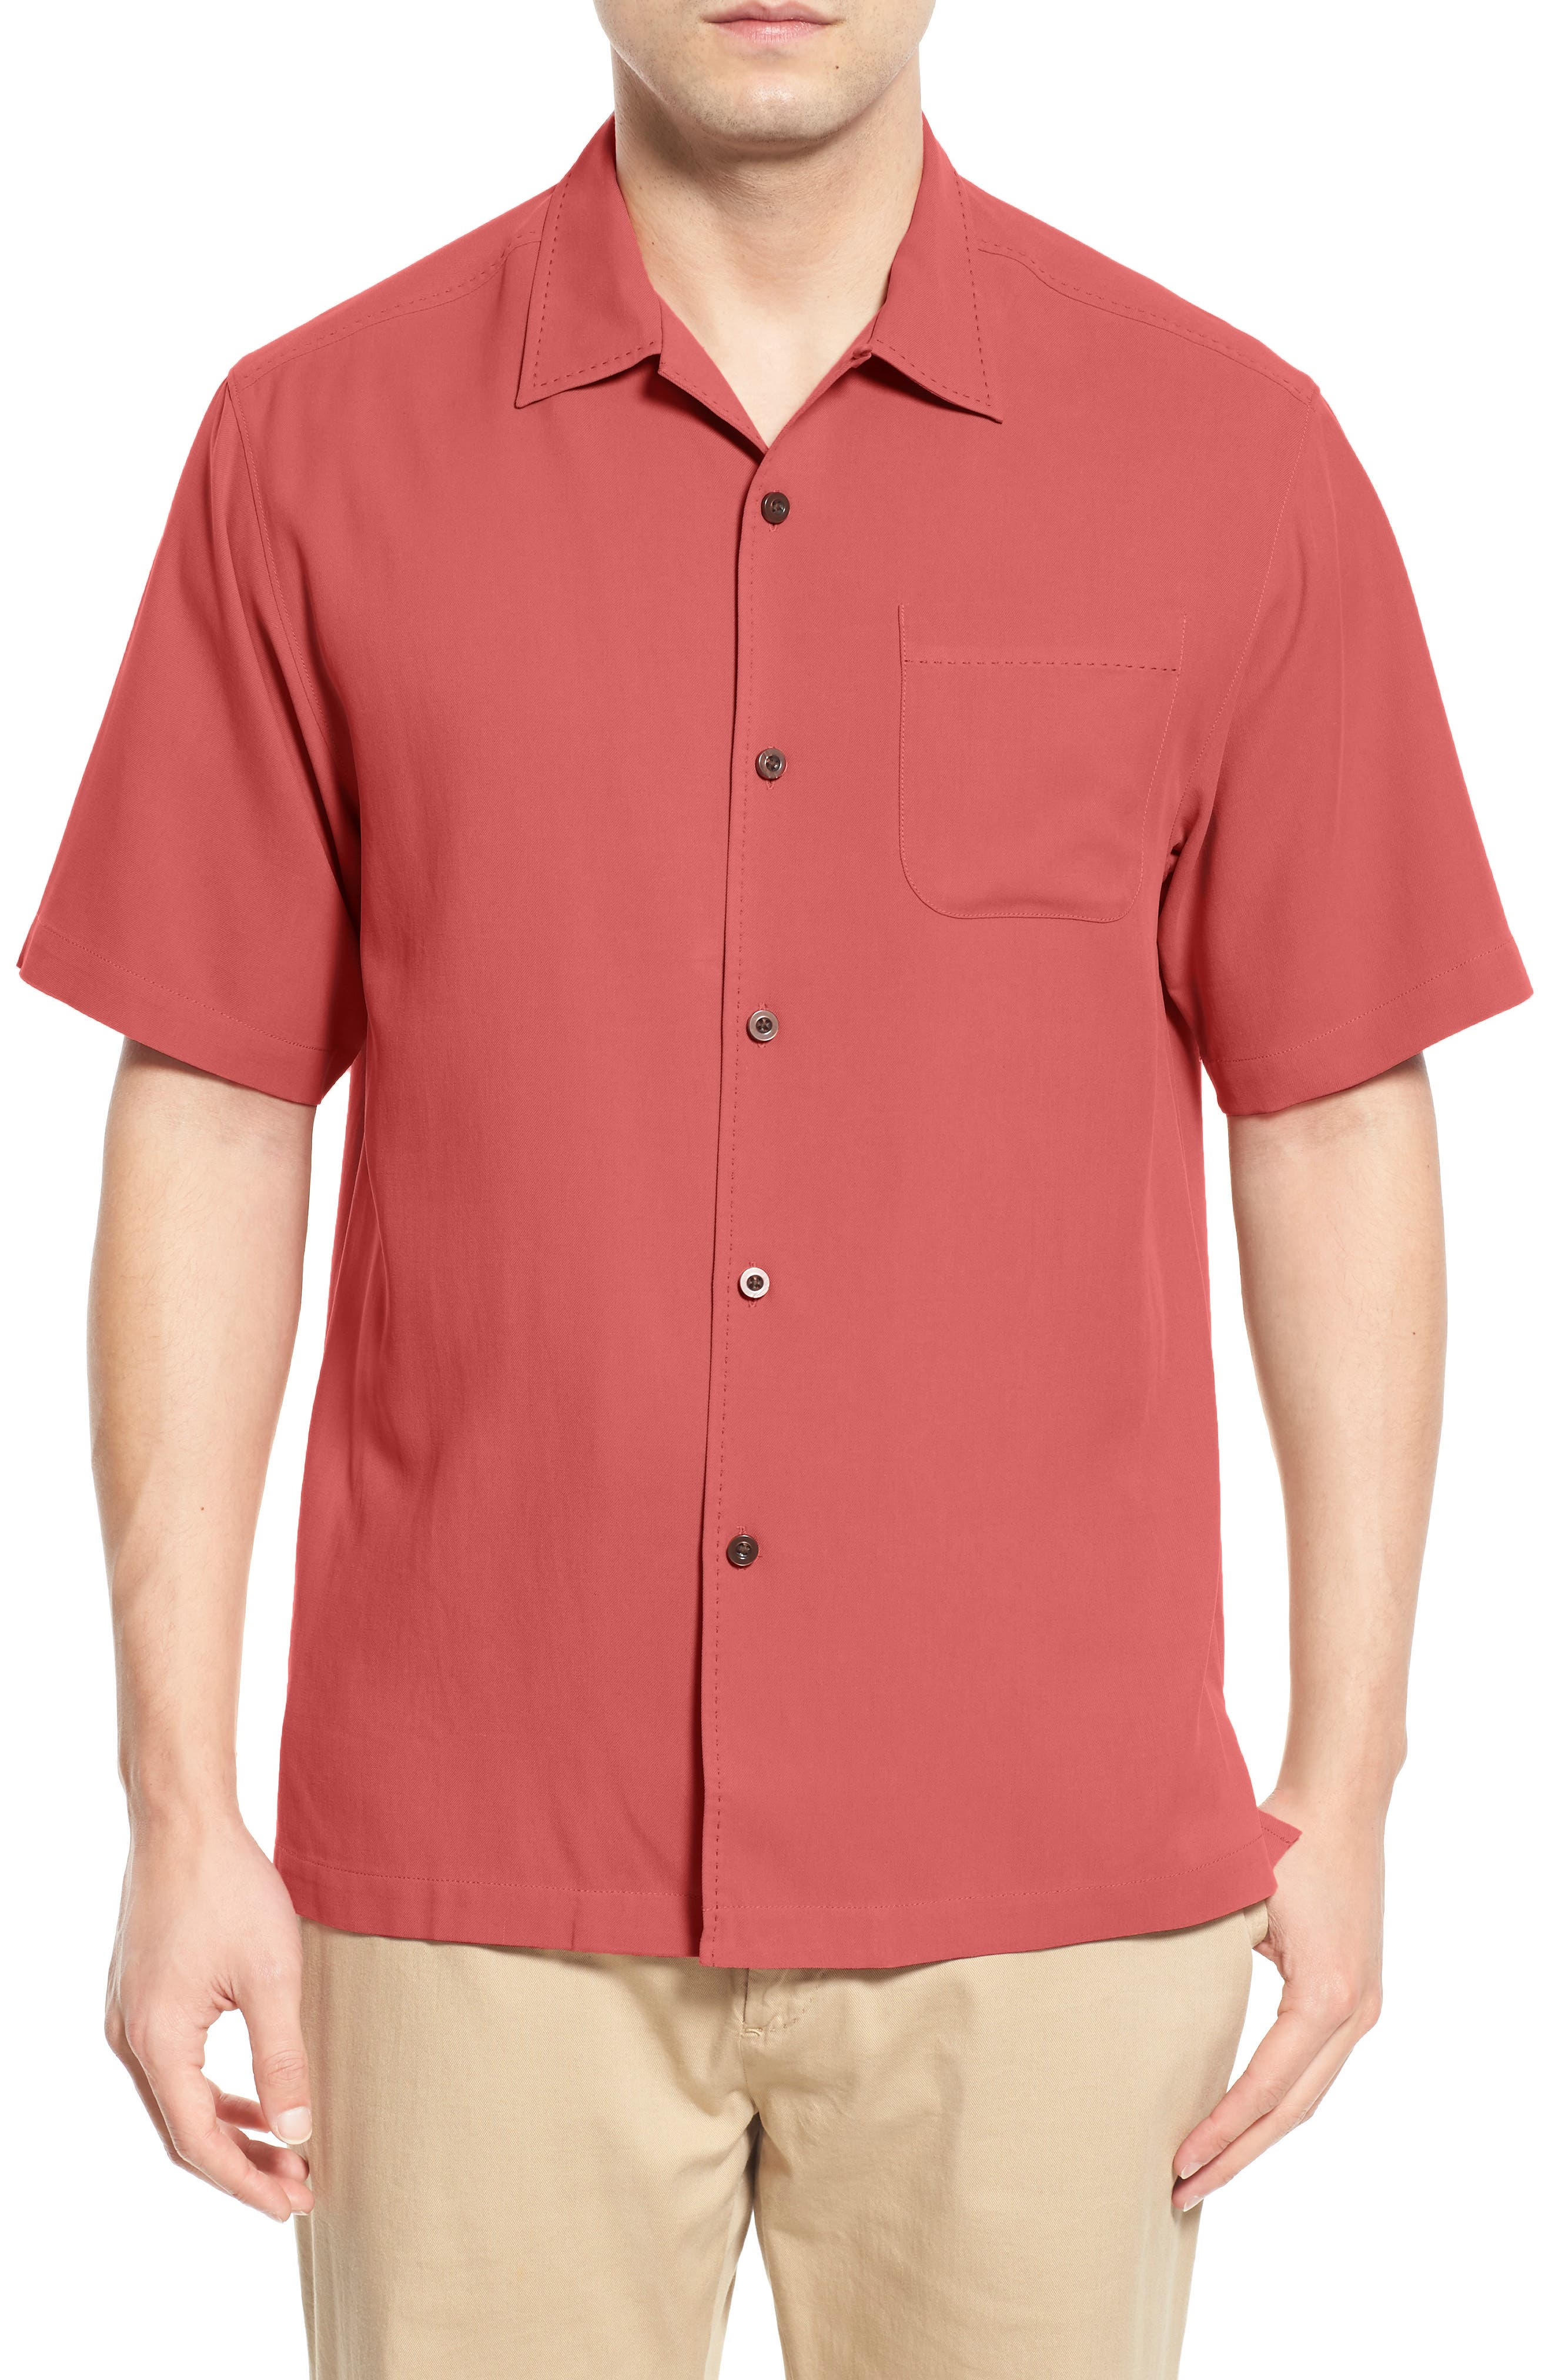 'Catalina Twill' Original Fit Silk Camp Shirt,                         Main,                         color, Coral Reef